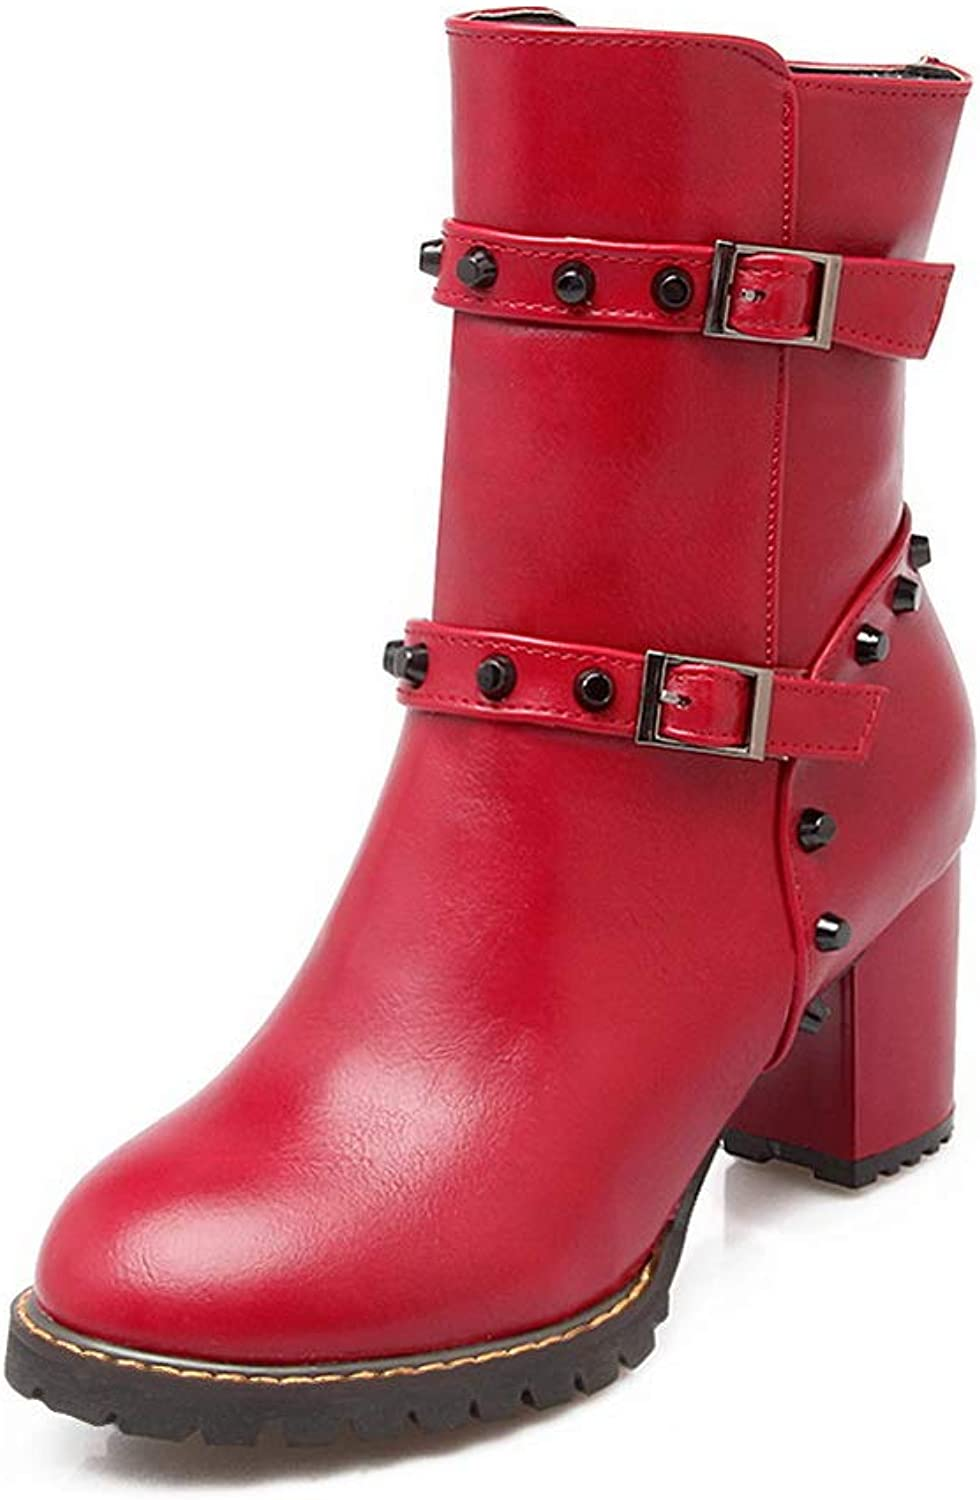 AN Womens Chunky Heels Metal Buckles Pointed-Toe Urethane Boots DKU02372